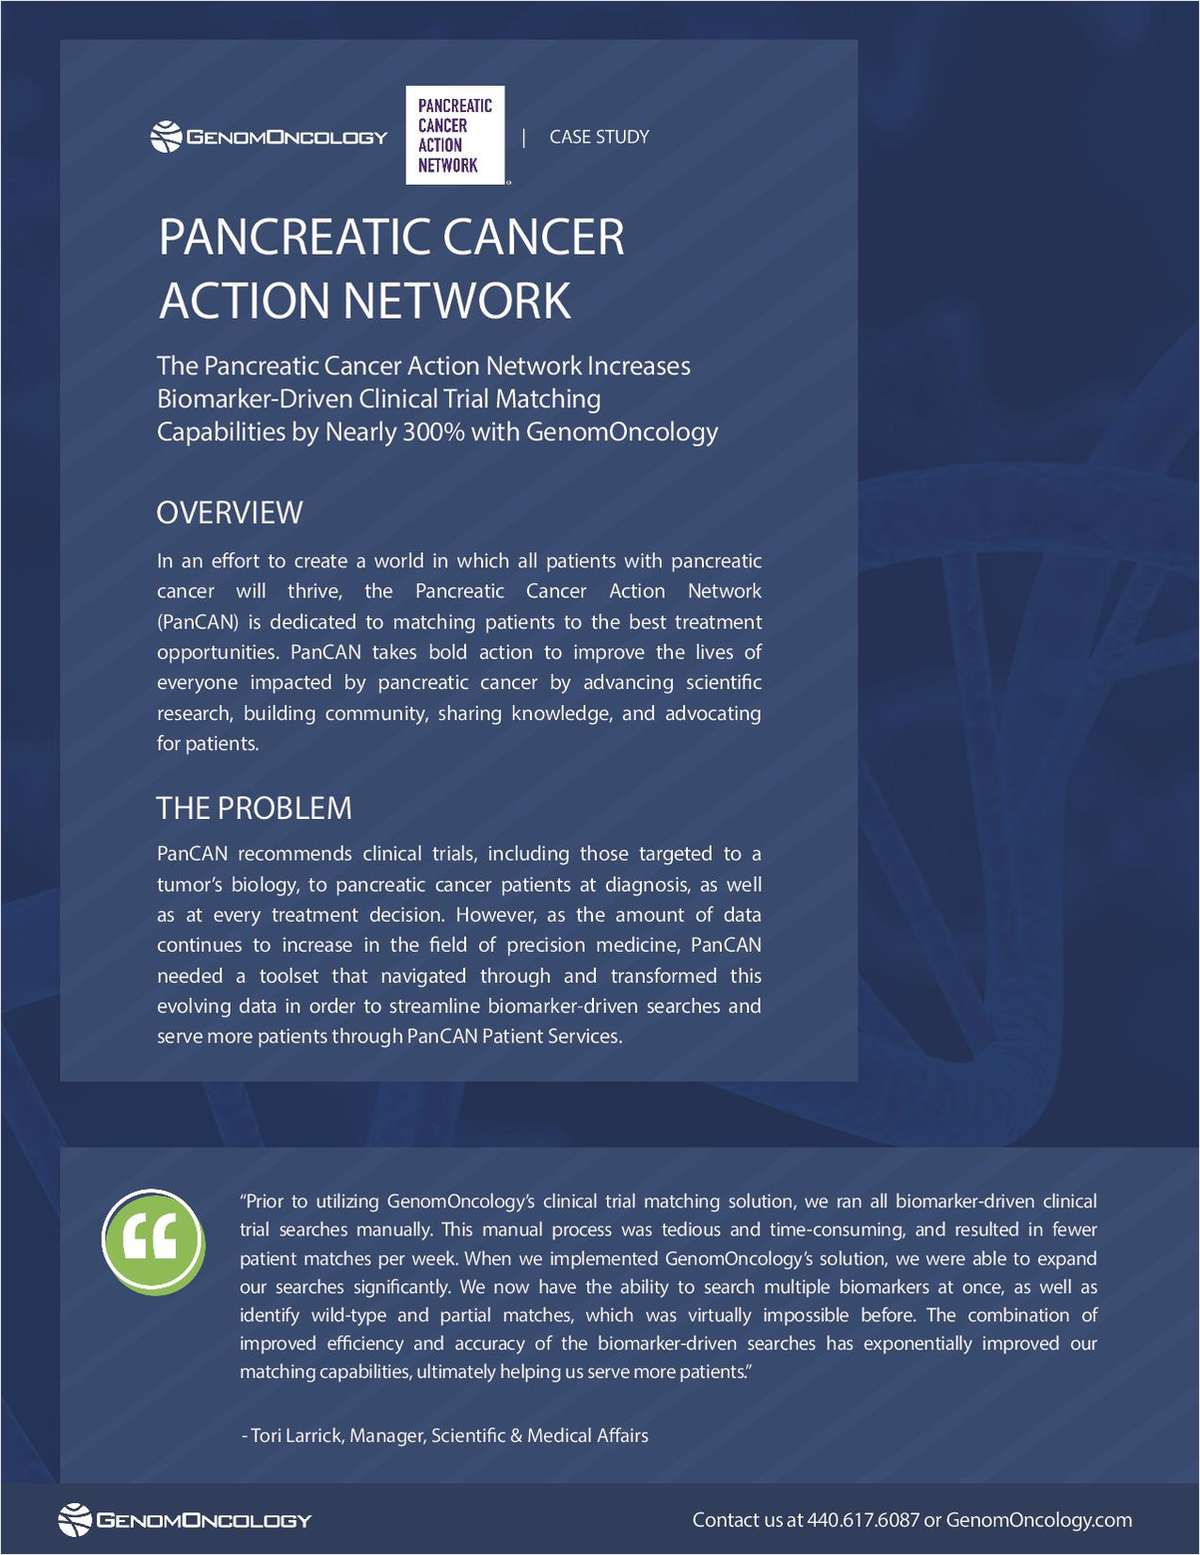 The Pancreatic Cancer Action Network Increases Biomarker-Driven Clinical Trial Matching Capabilities by nearly 300% with GenomOncology.